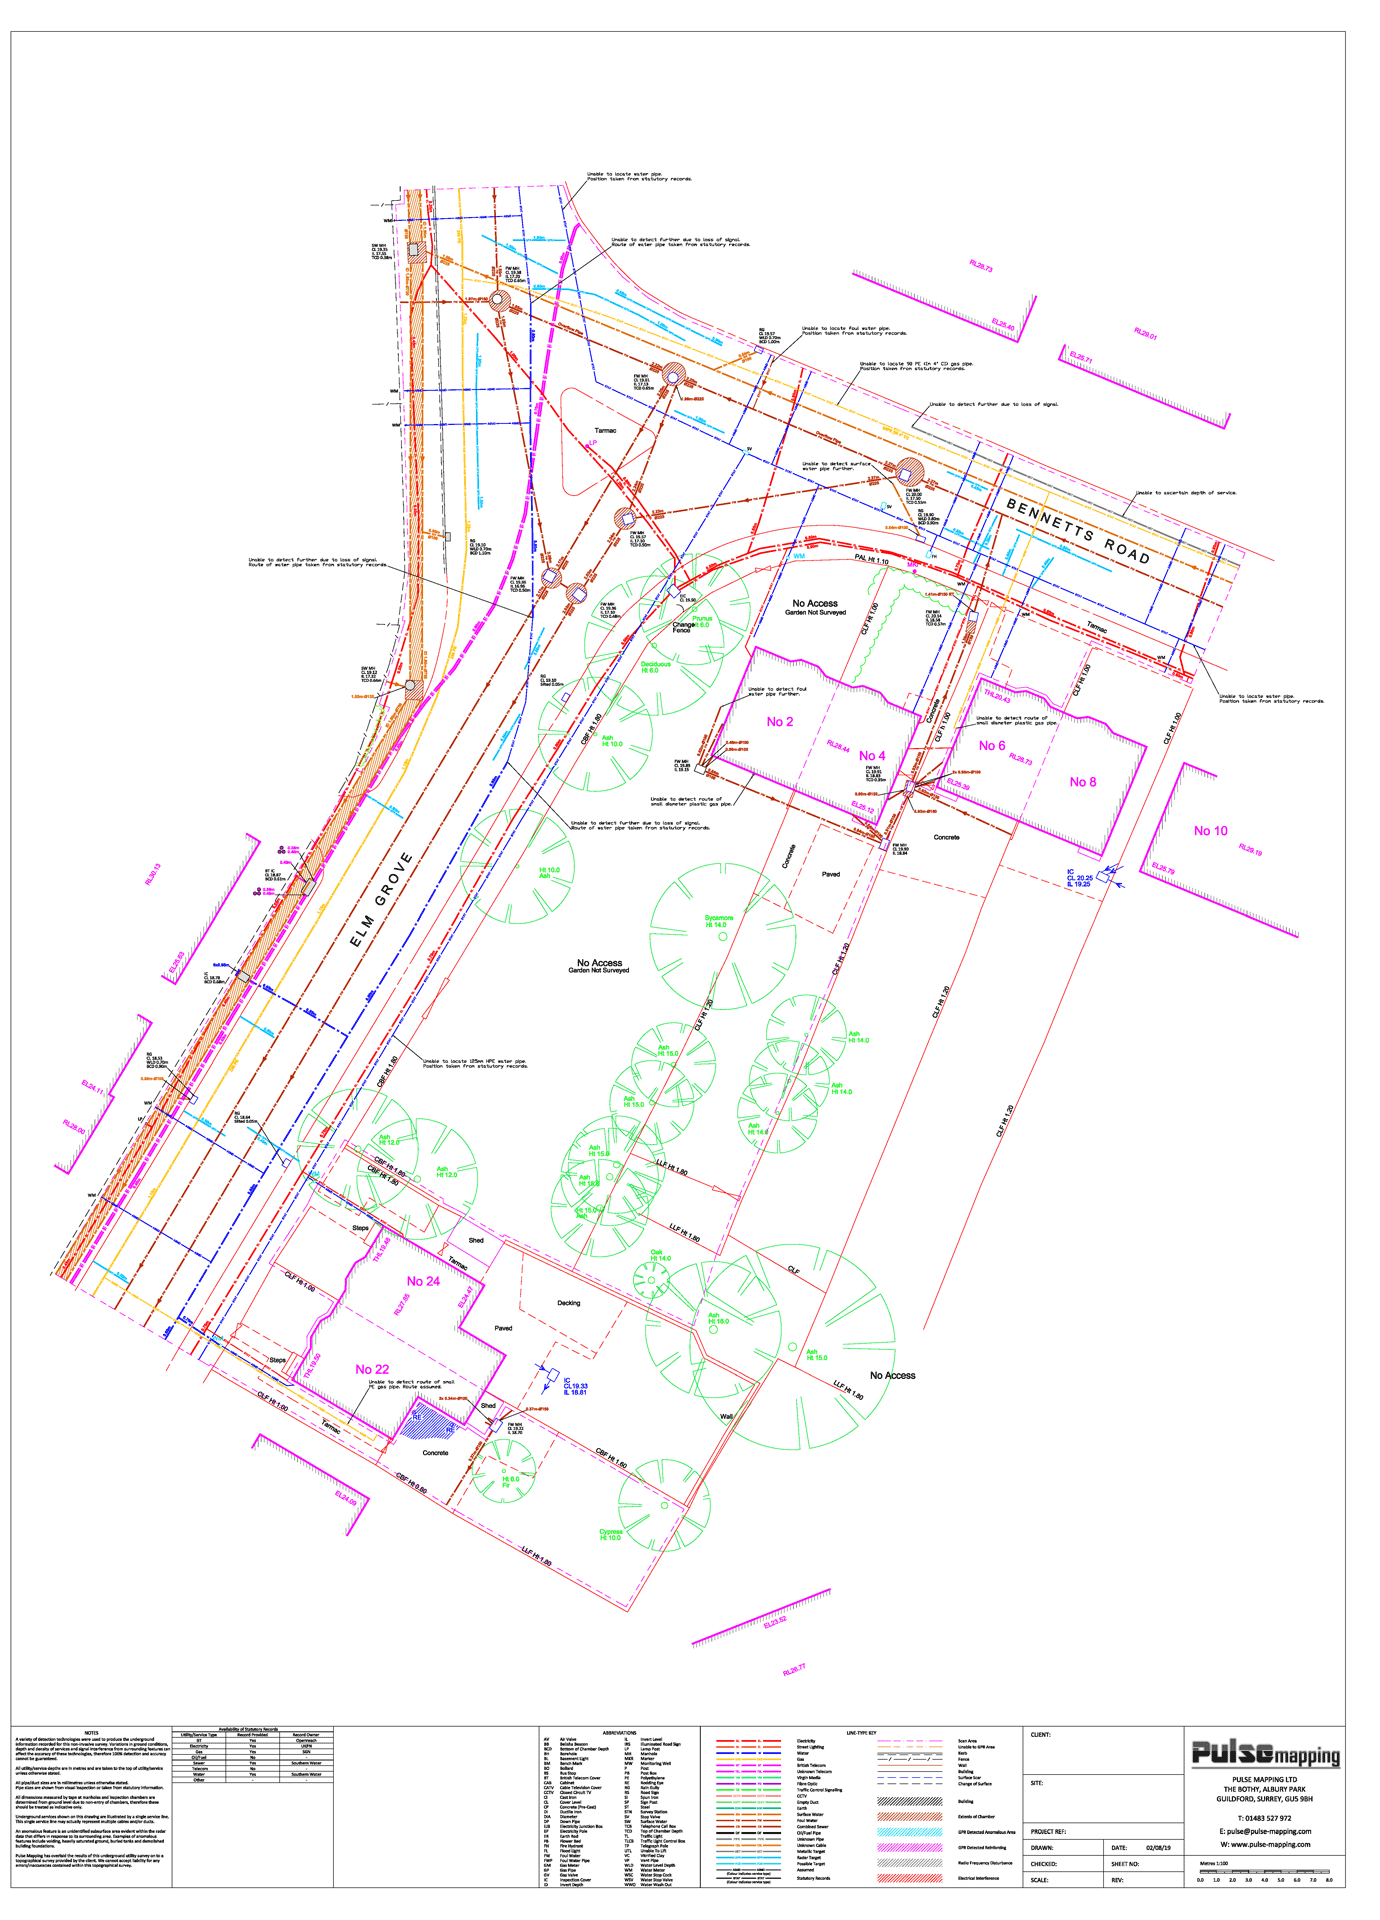 Utility survey of carriageway and footpath